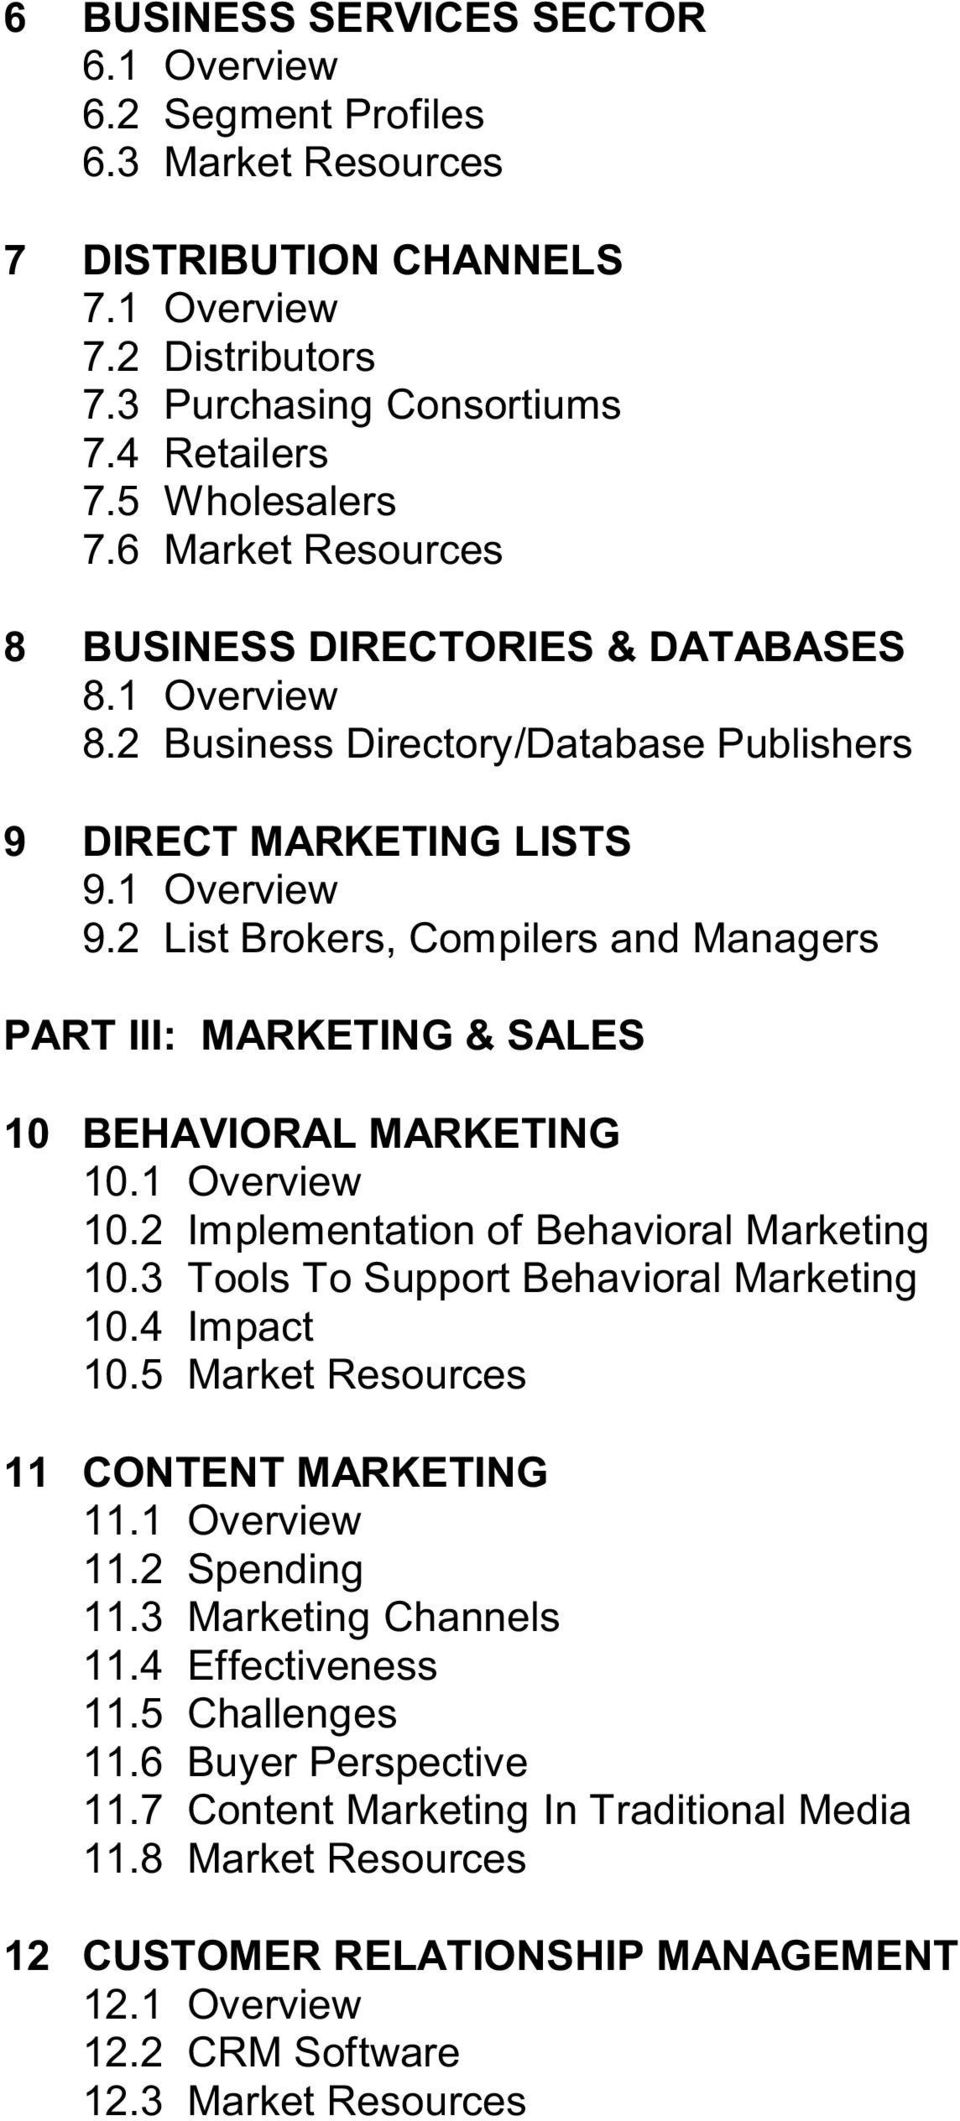 2 List Brokers, Compilers and Managers PART III: MARKETING & SALES 10 BEHAVIORAL MARKETING 10.1 Overview 10.2 Implementation of Behavioral Marketing 10.3 Tools To Support Behavioral Marketing 10.